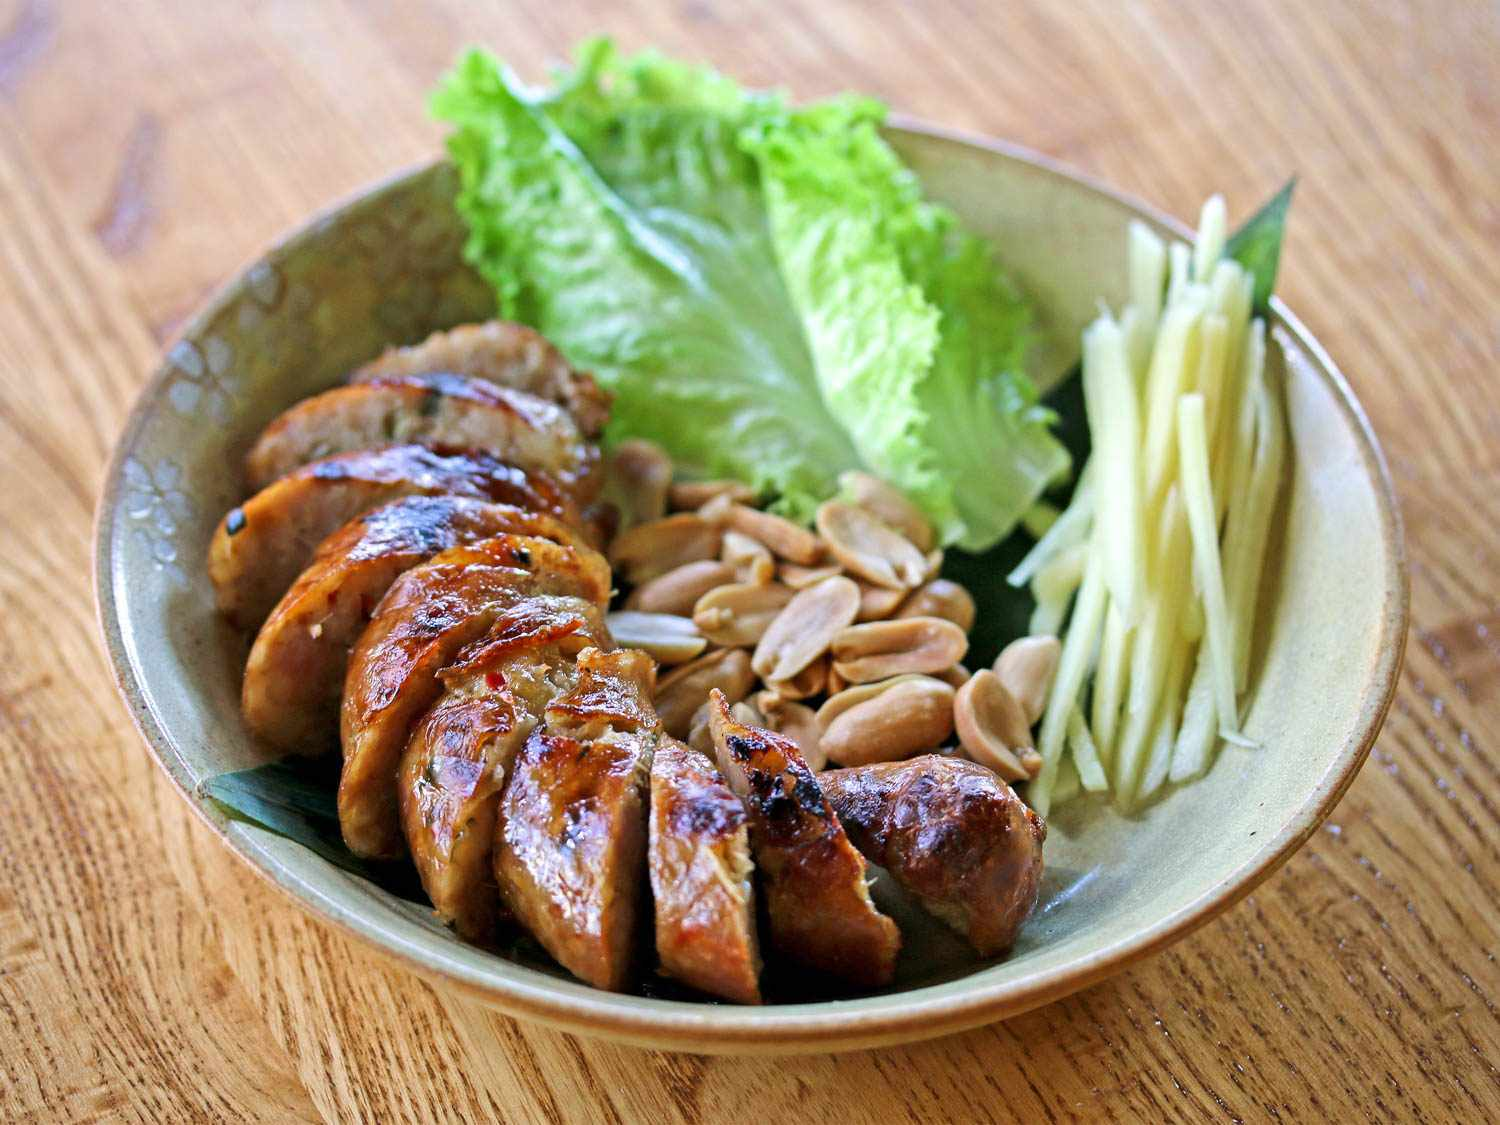 A stoneware bowl with slices of herbed pork sausage (sai oua) and raw vegetables